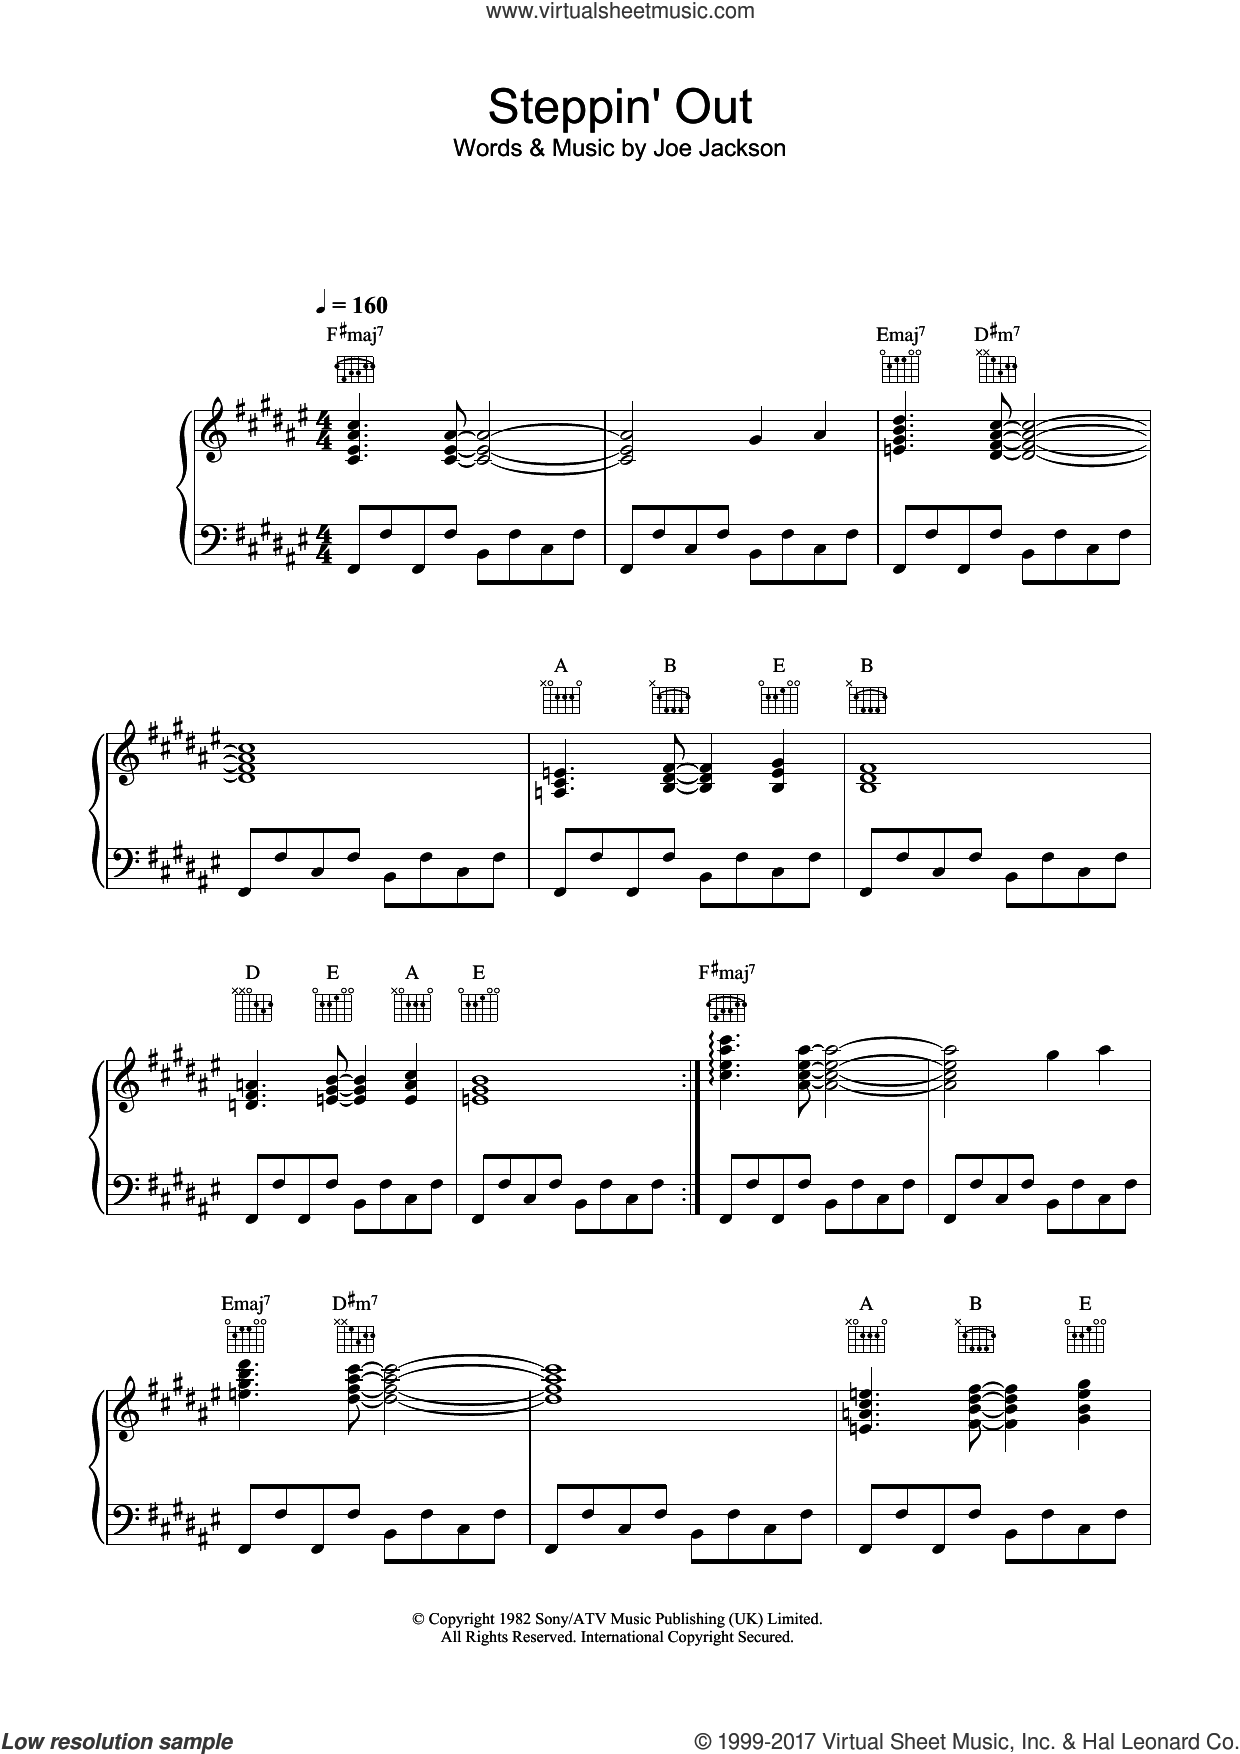 Steppin' Out sheet music for voice, piano or guitar by Joe Jackson, intermediate skill level